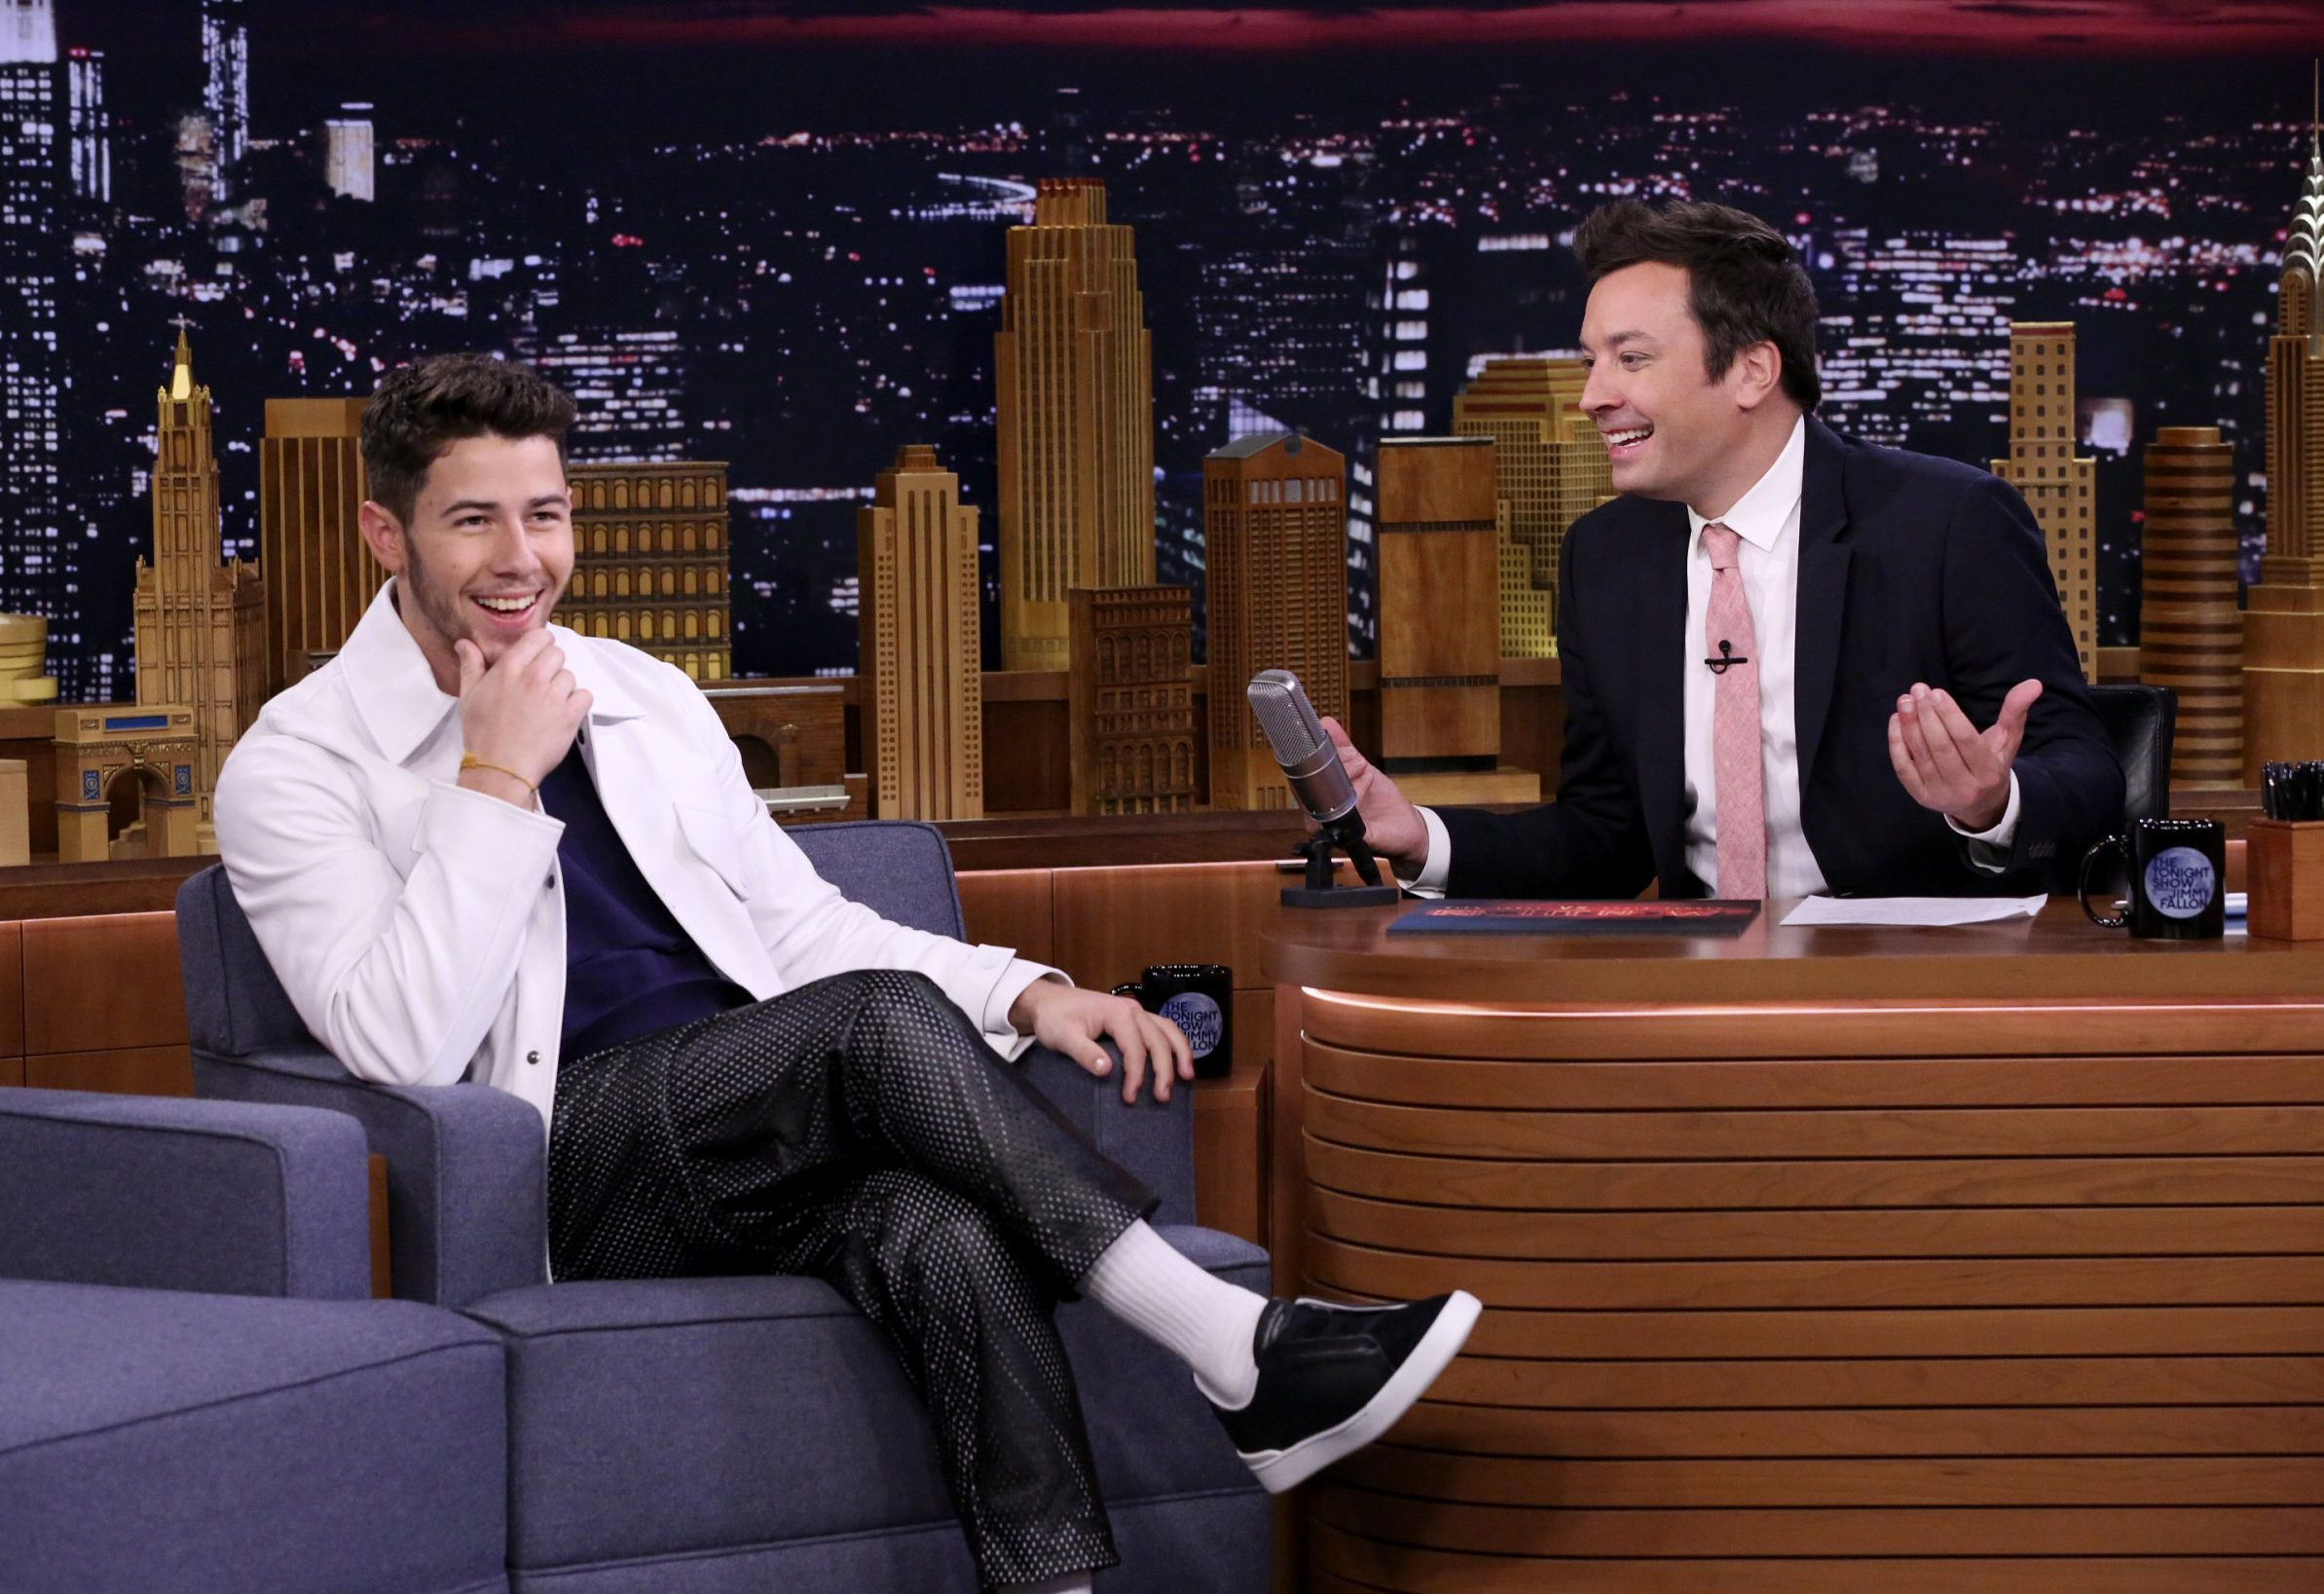 THE TONIGHT SHOW STARRING JIMMY FALLON -- Episode 0920 -- Pictured: (l-r) Singer Nick Jonas during an interview with host Jimmy Fallon on September 7, 2018 -- (Photo by: Andrew Lipovsky/NBC/NBCU Photo Bank via Getty Images)